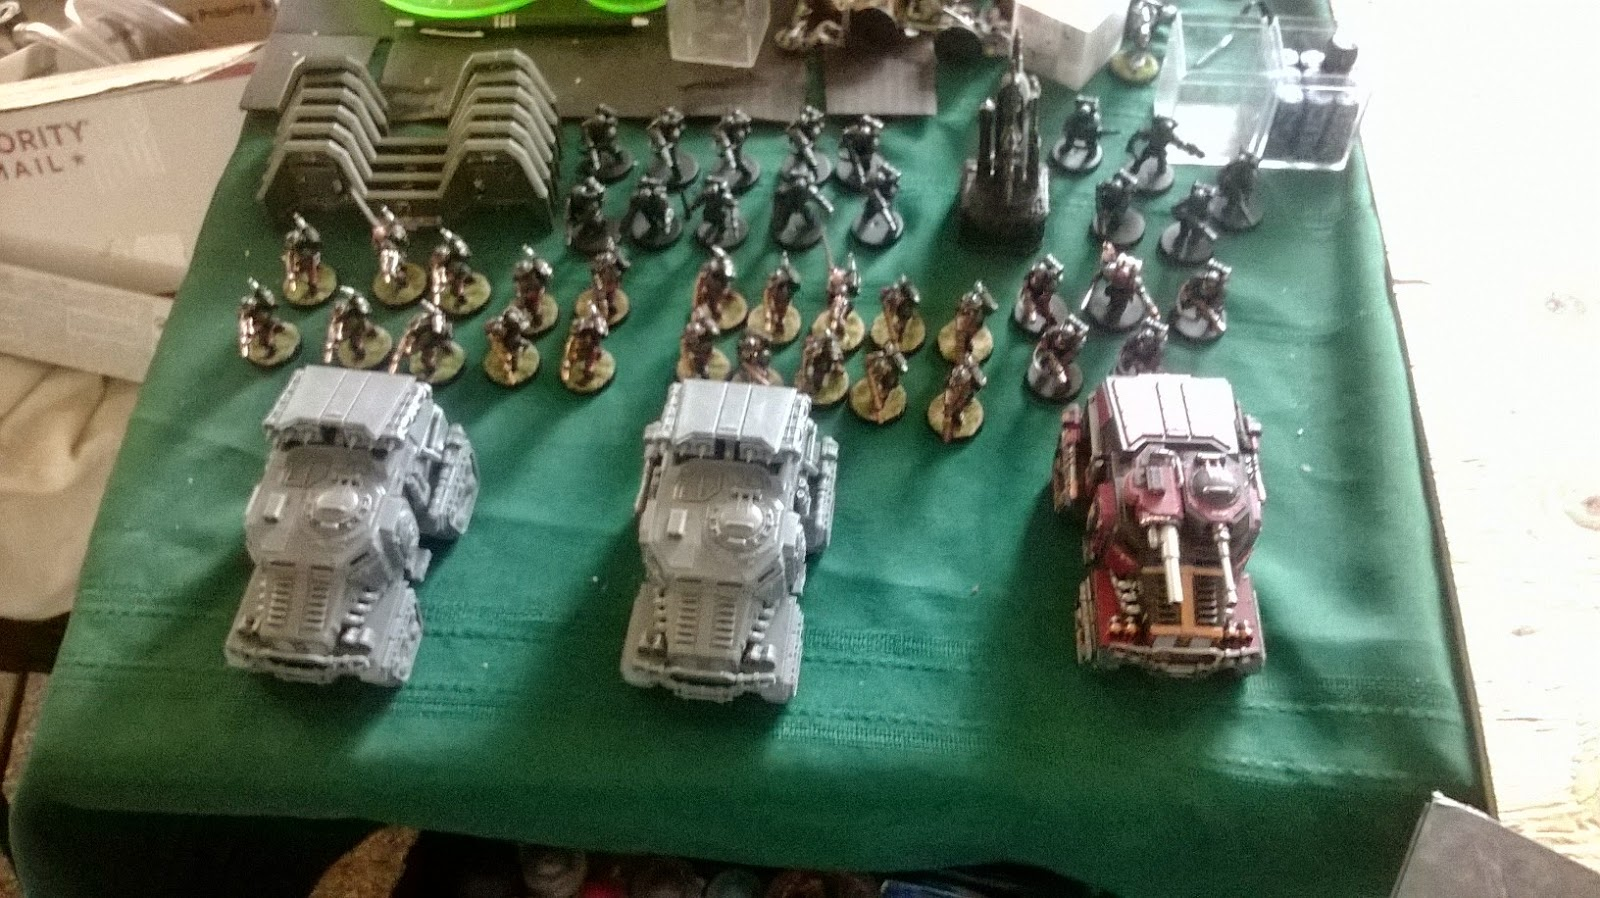 Cadia S Creed Warhammer 40k And The Imperial Guard